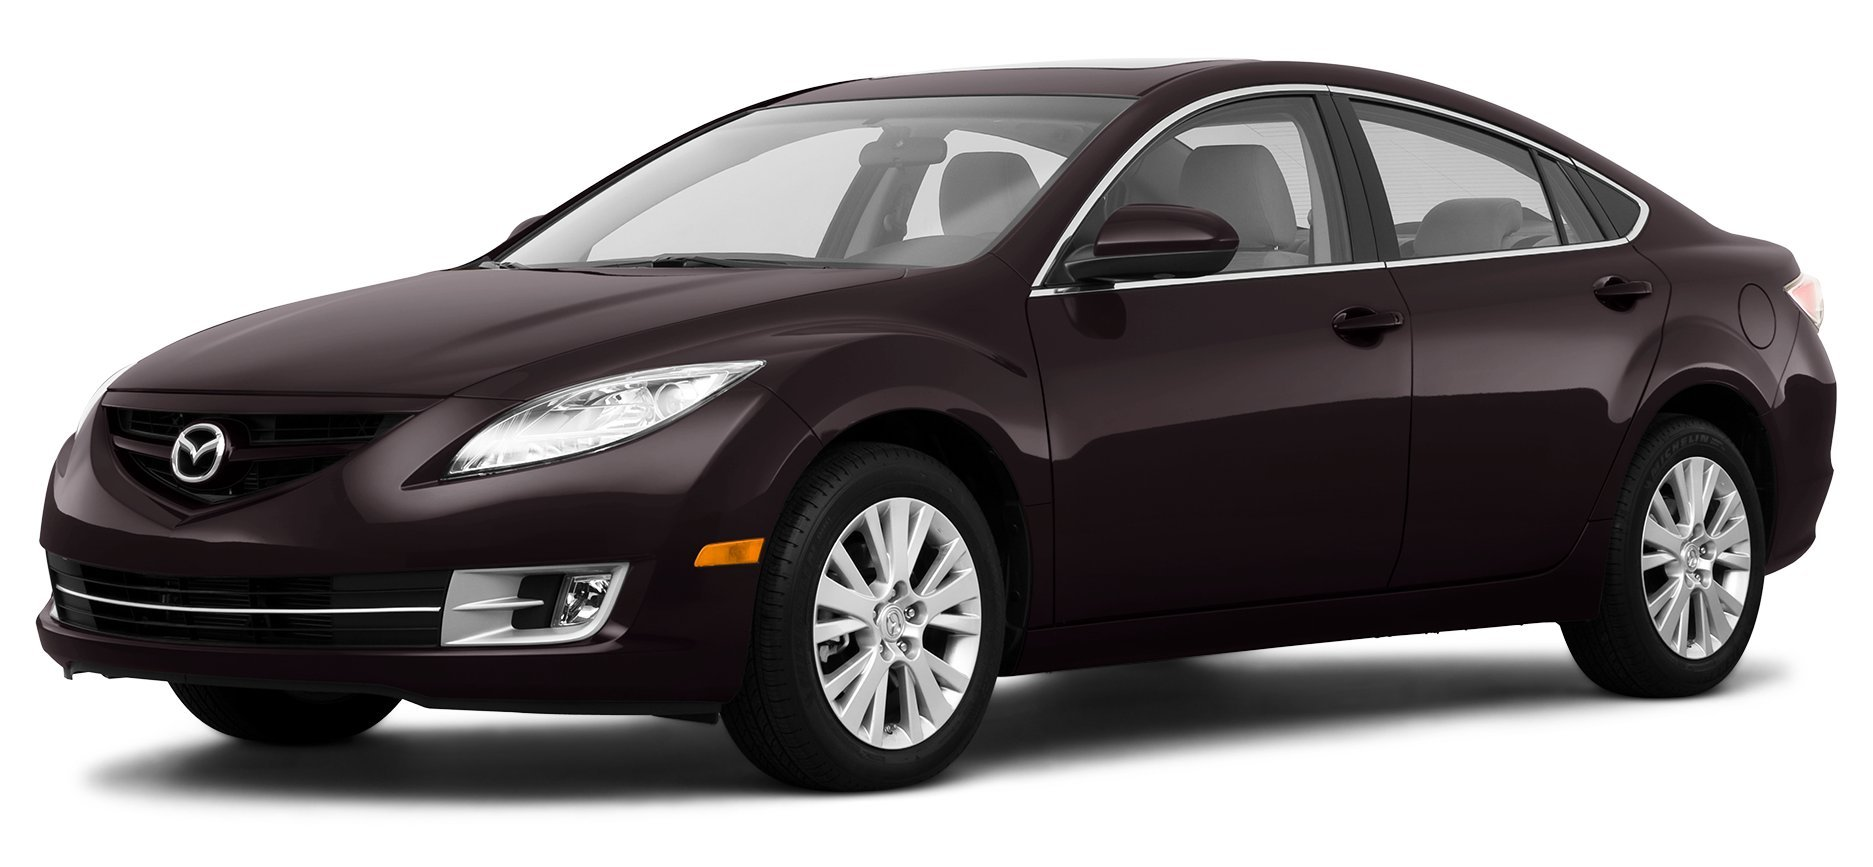 2010 mazda 6 reviews images and specs vehicles. Black Bedroom Furniture Sets. Home Design Ideas